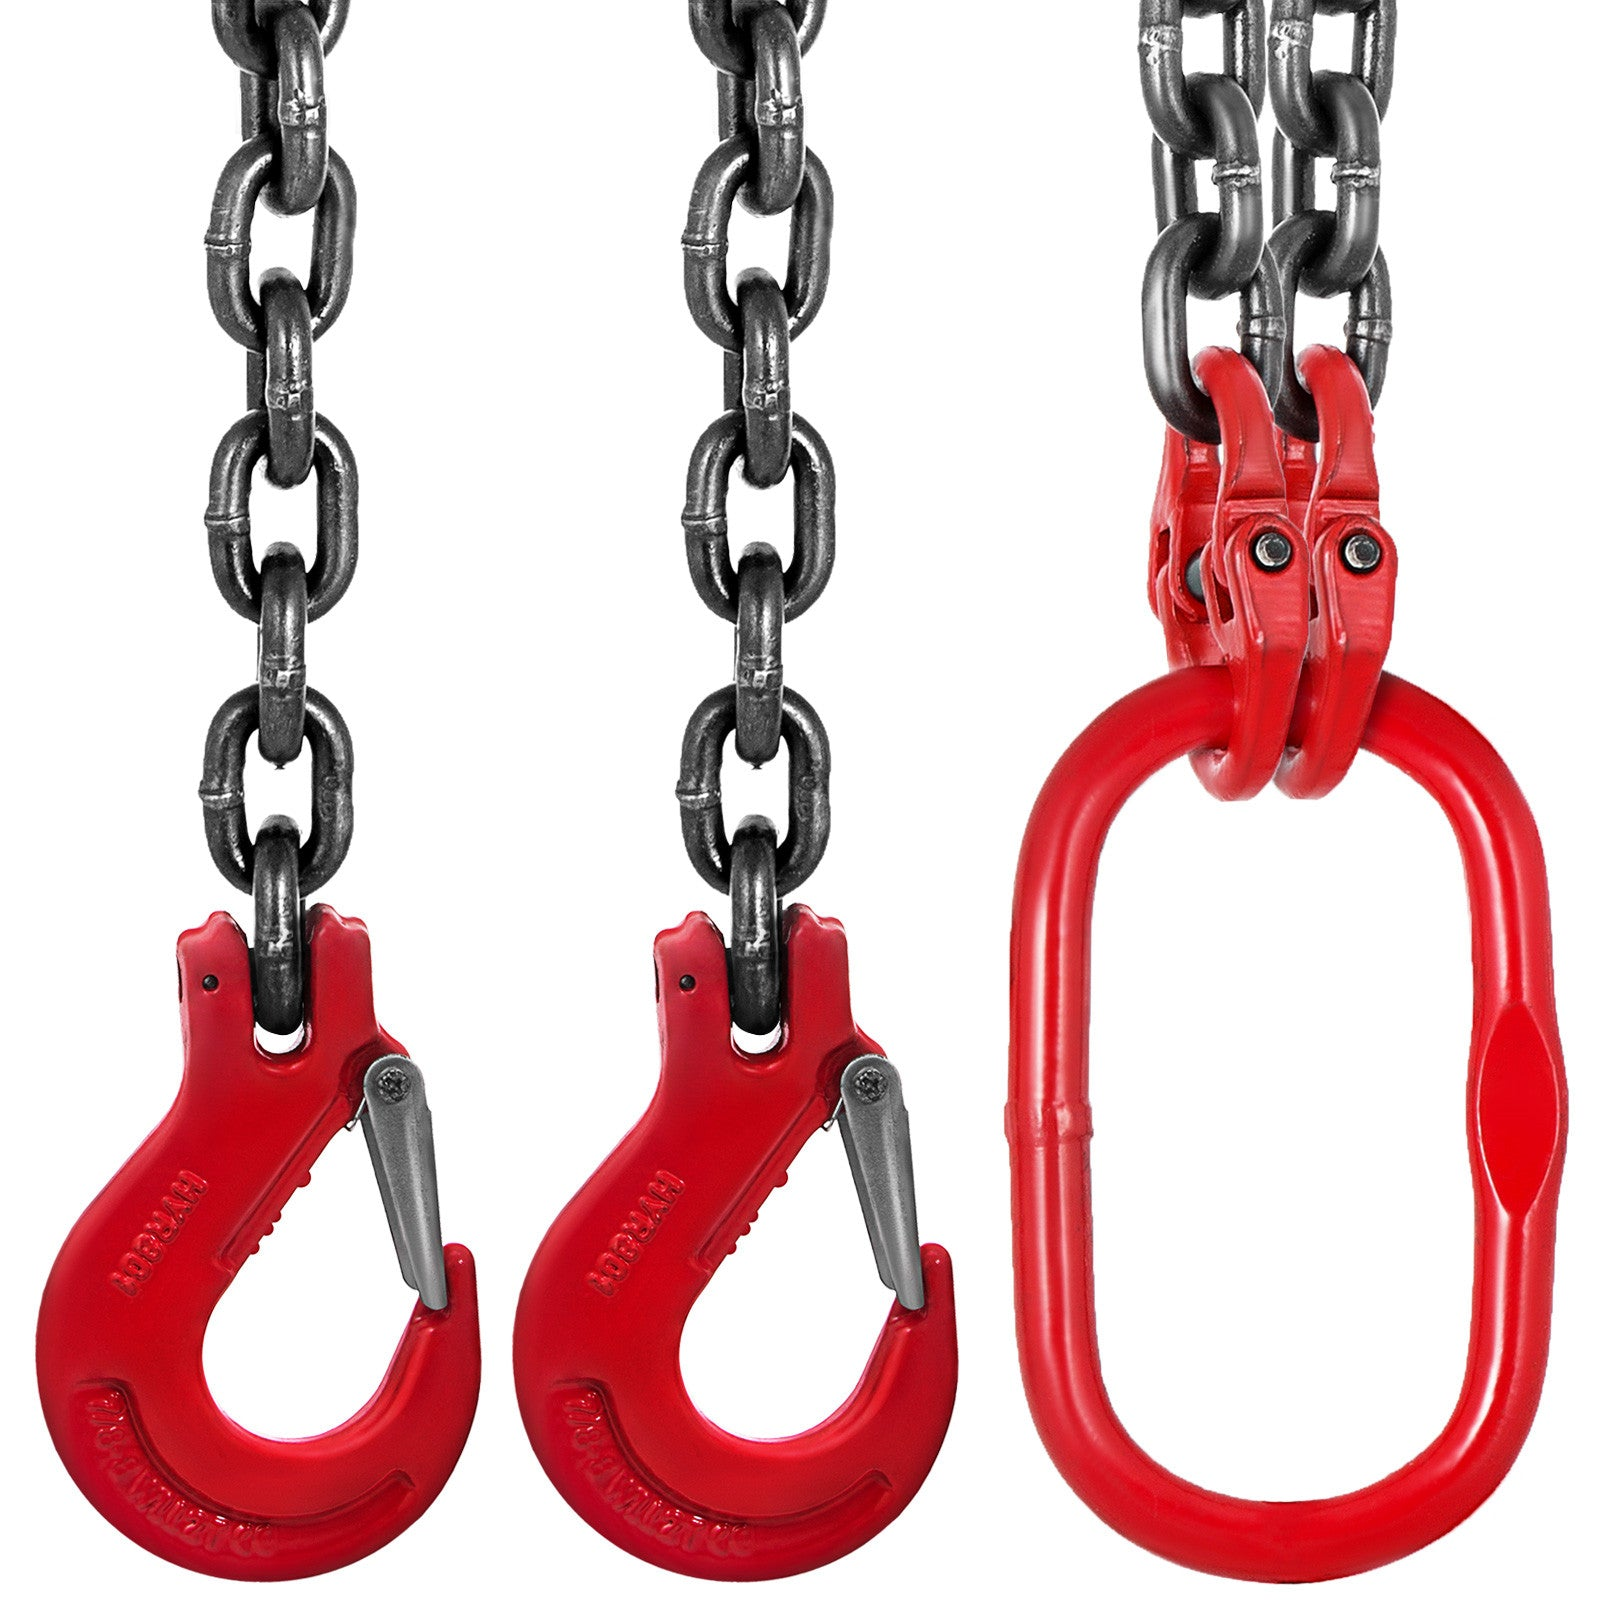 "6/15"" X 3.3' Lifting Chain Slings 2legs 8mmx1m Grade 80 5/16inch/8mm Chain Sling"